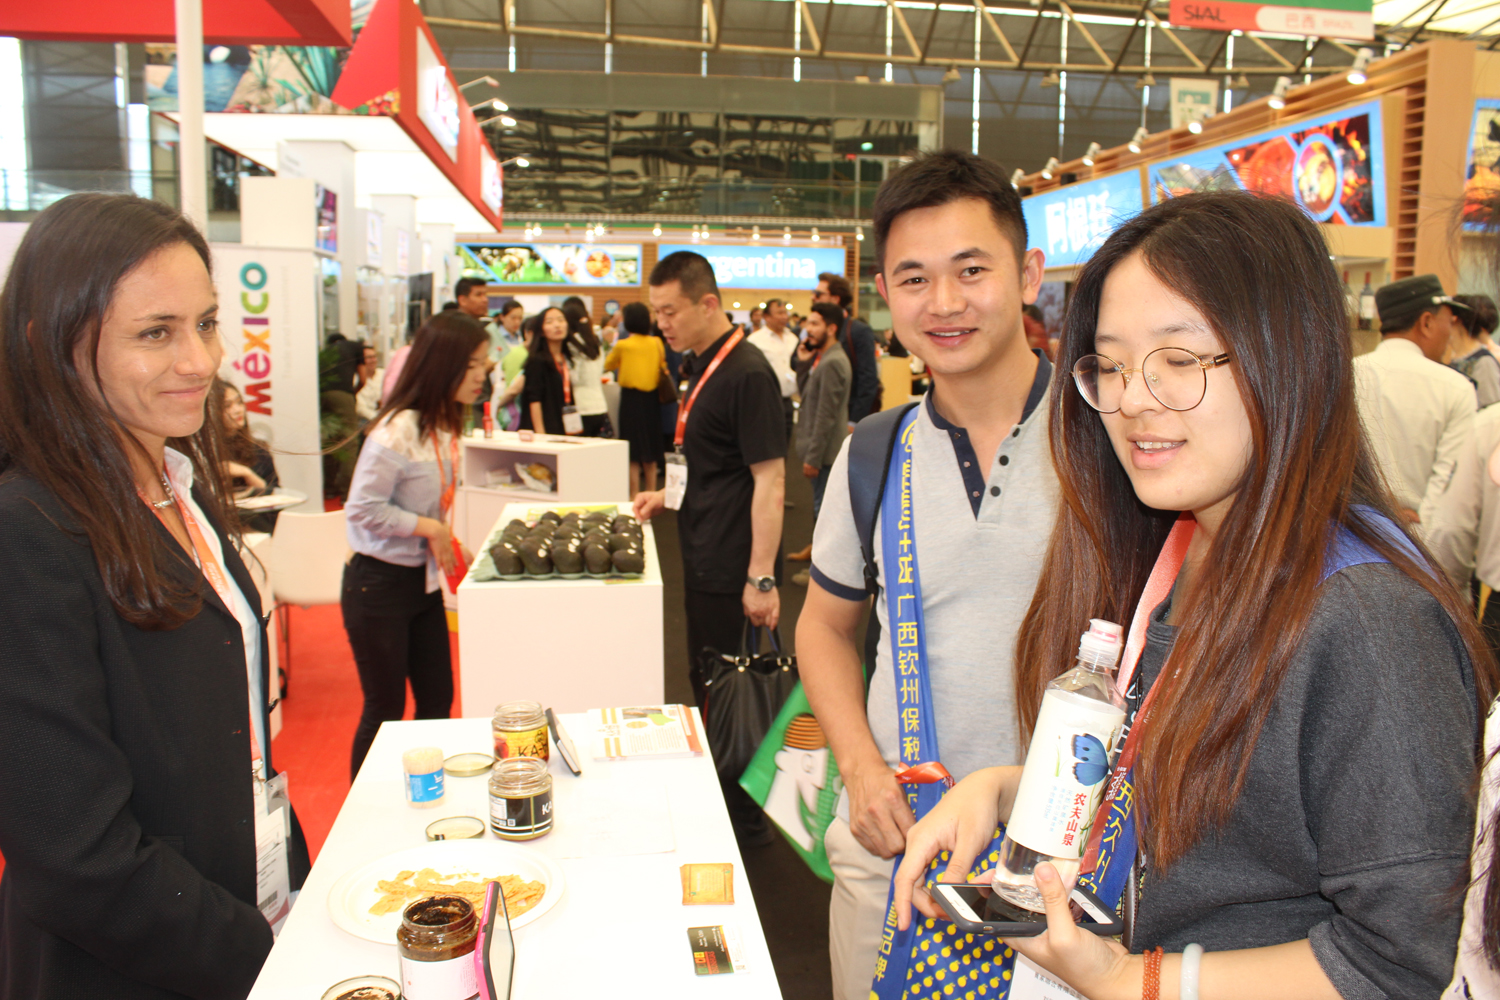 Sial china 2017. jueves 15